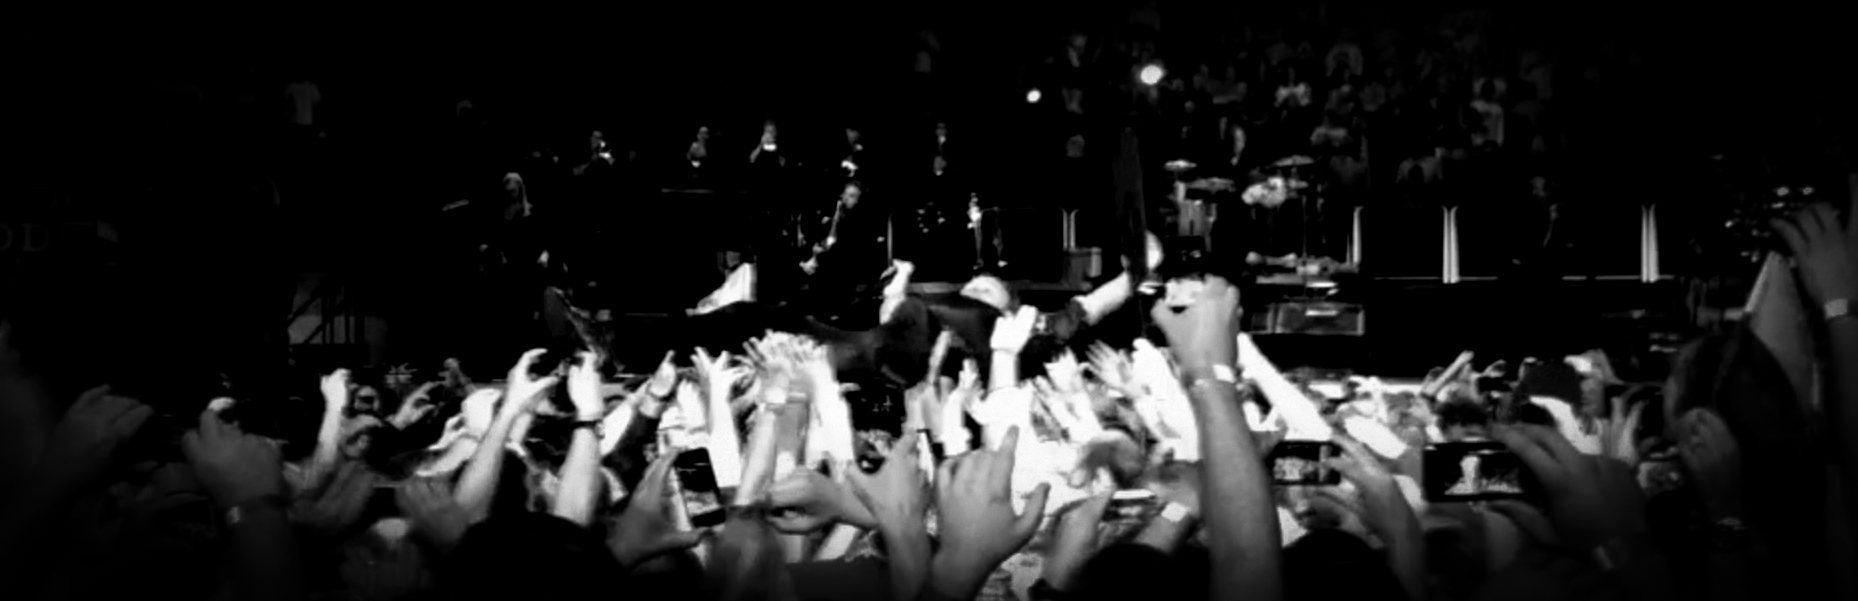 Concert Crowd From Stage Black And White